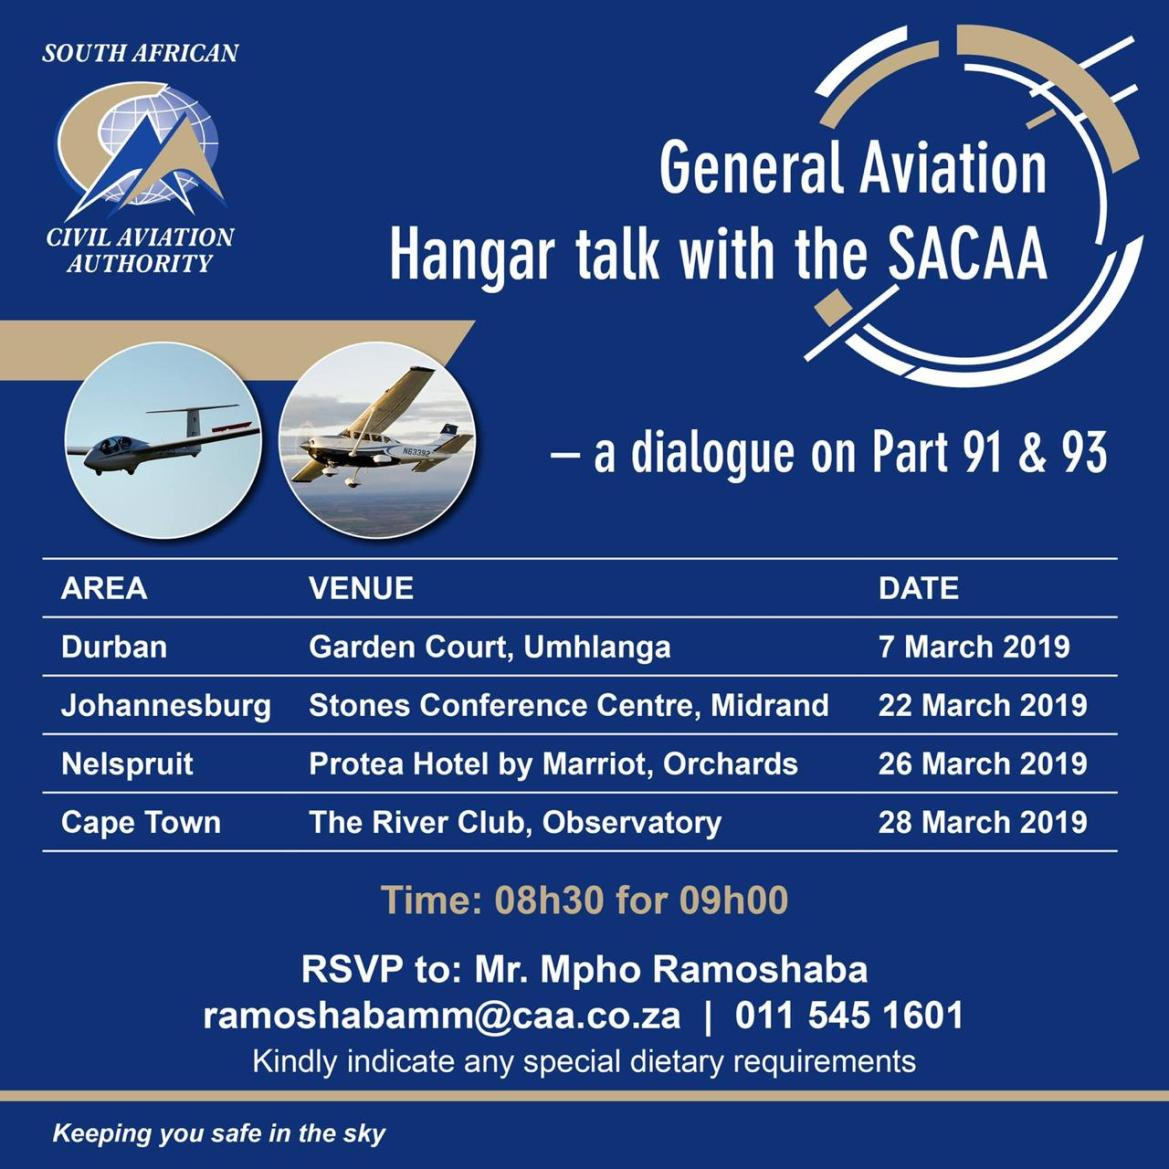 General Aviation Hangar talk with the SACAA – 22 March 2019